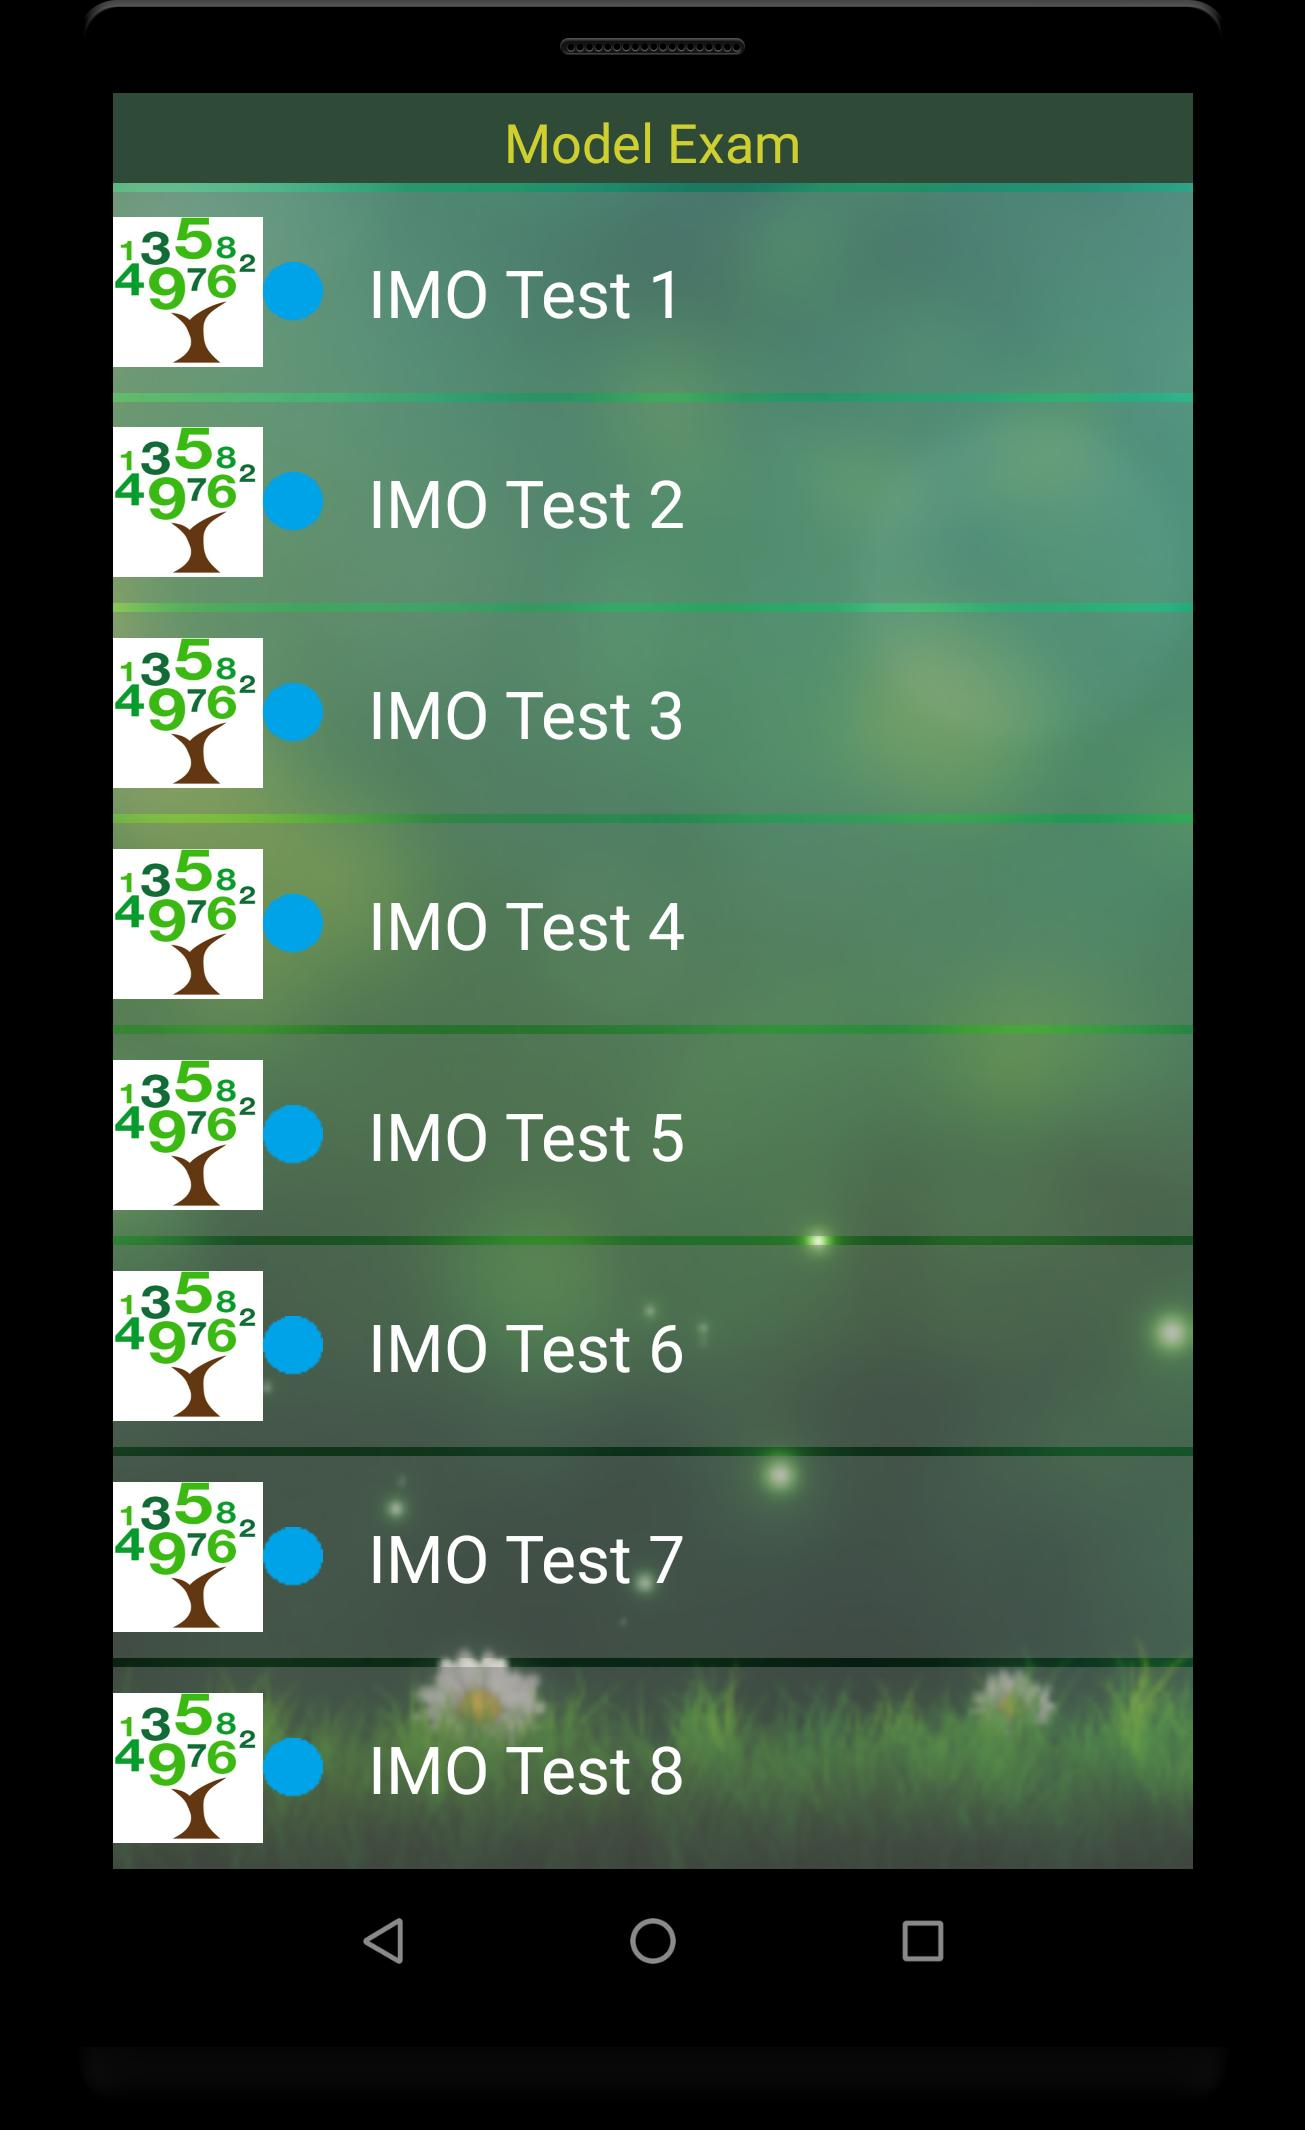 IMO 1 Maths for Android - APK Download